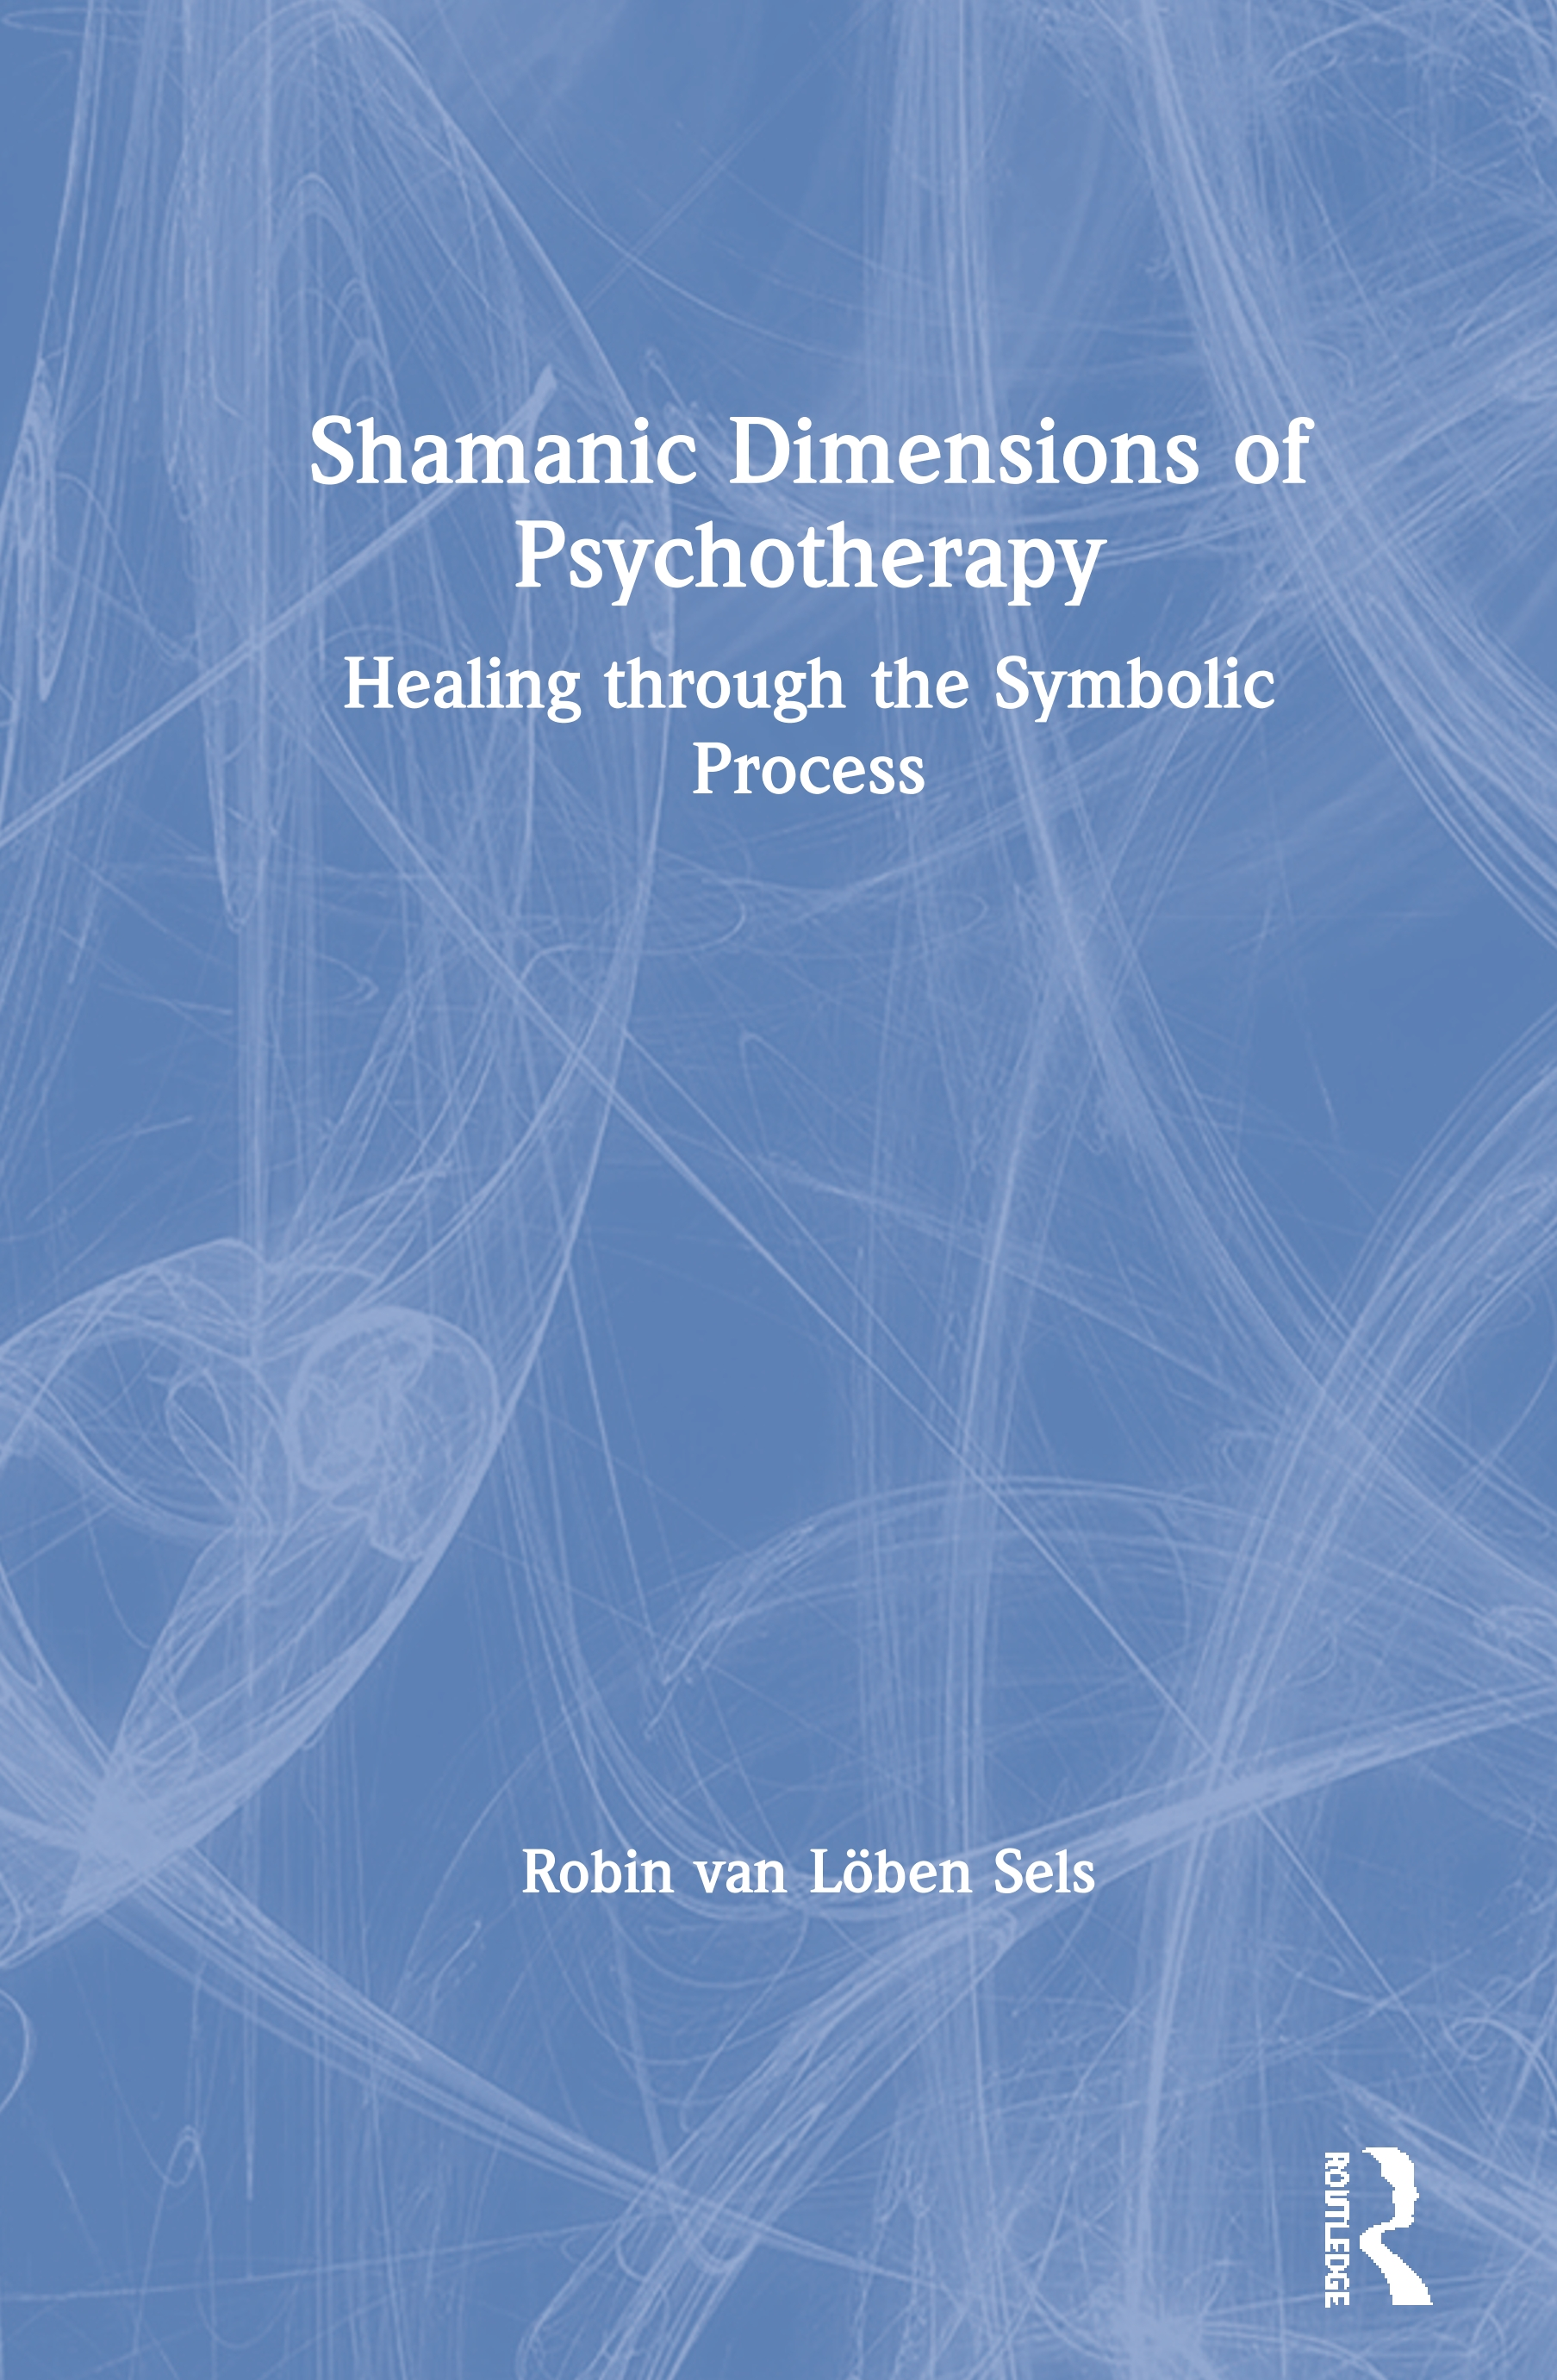 Shamanic Dimensions of Psychotherapy: Healing through the Symbolic Process book cover